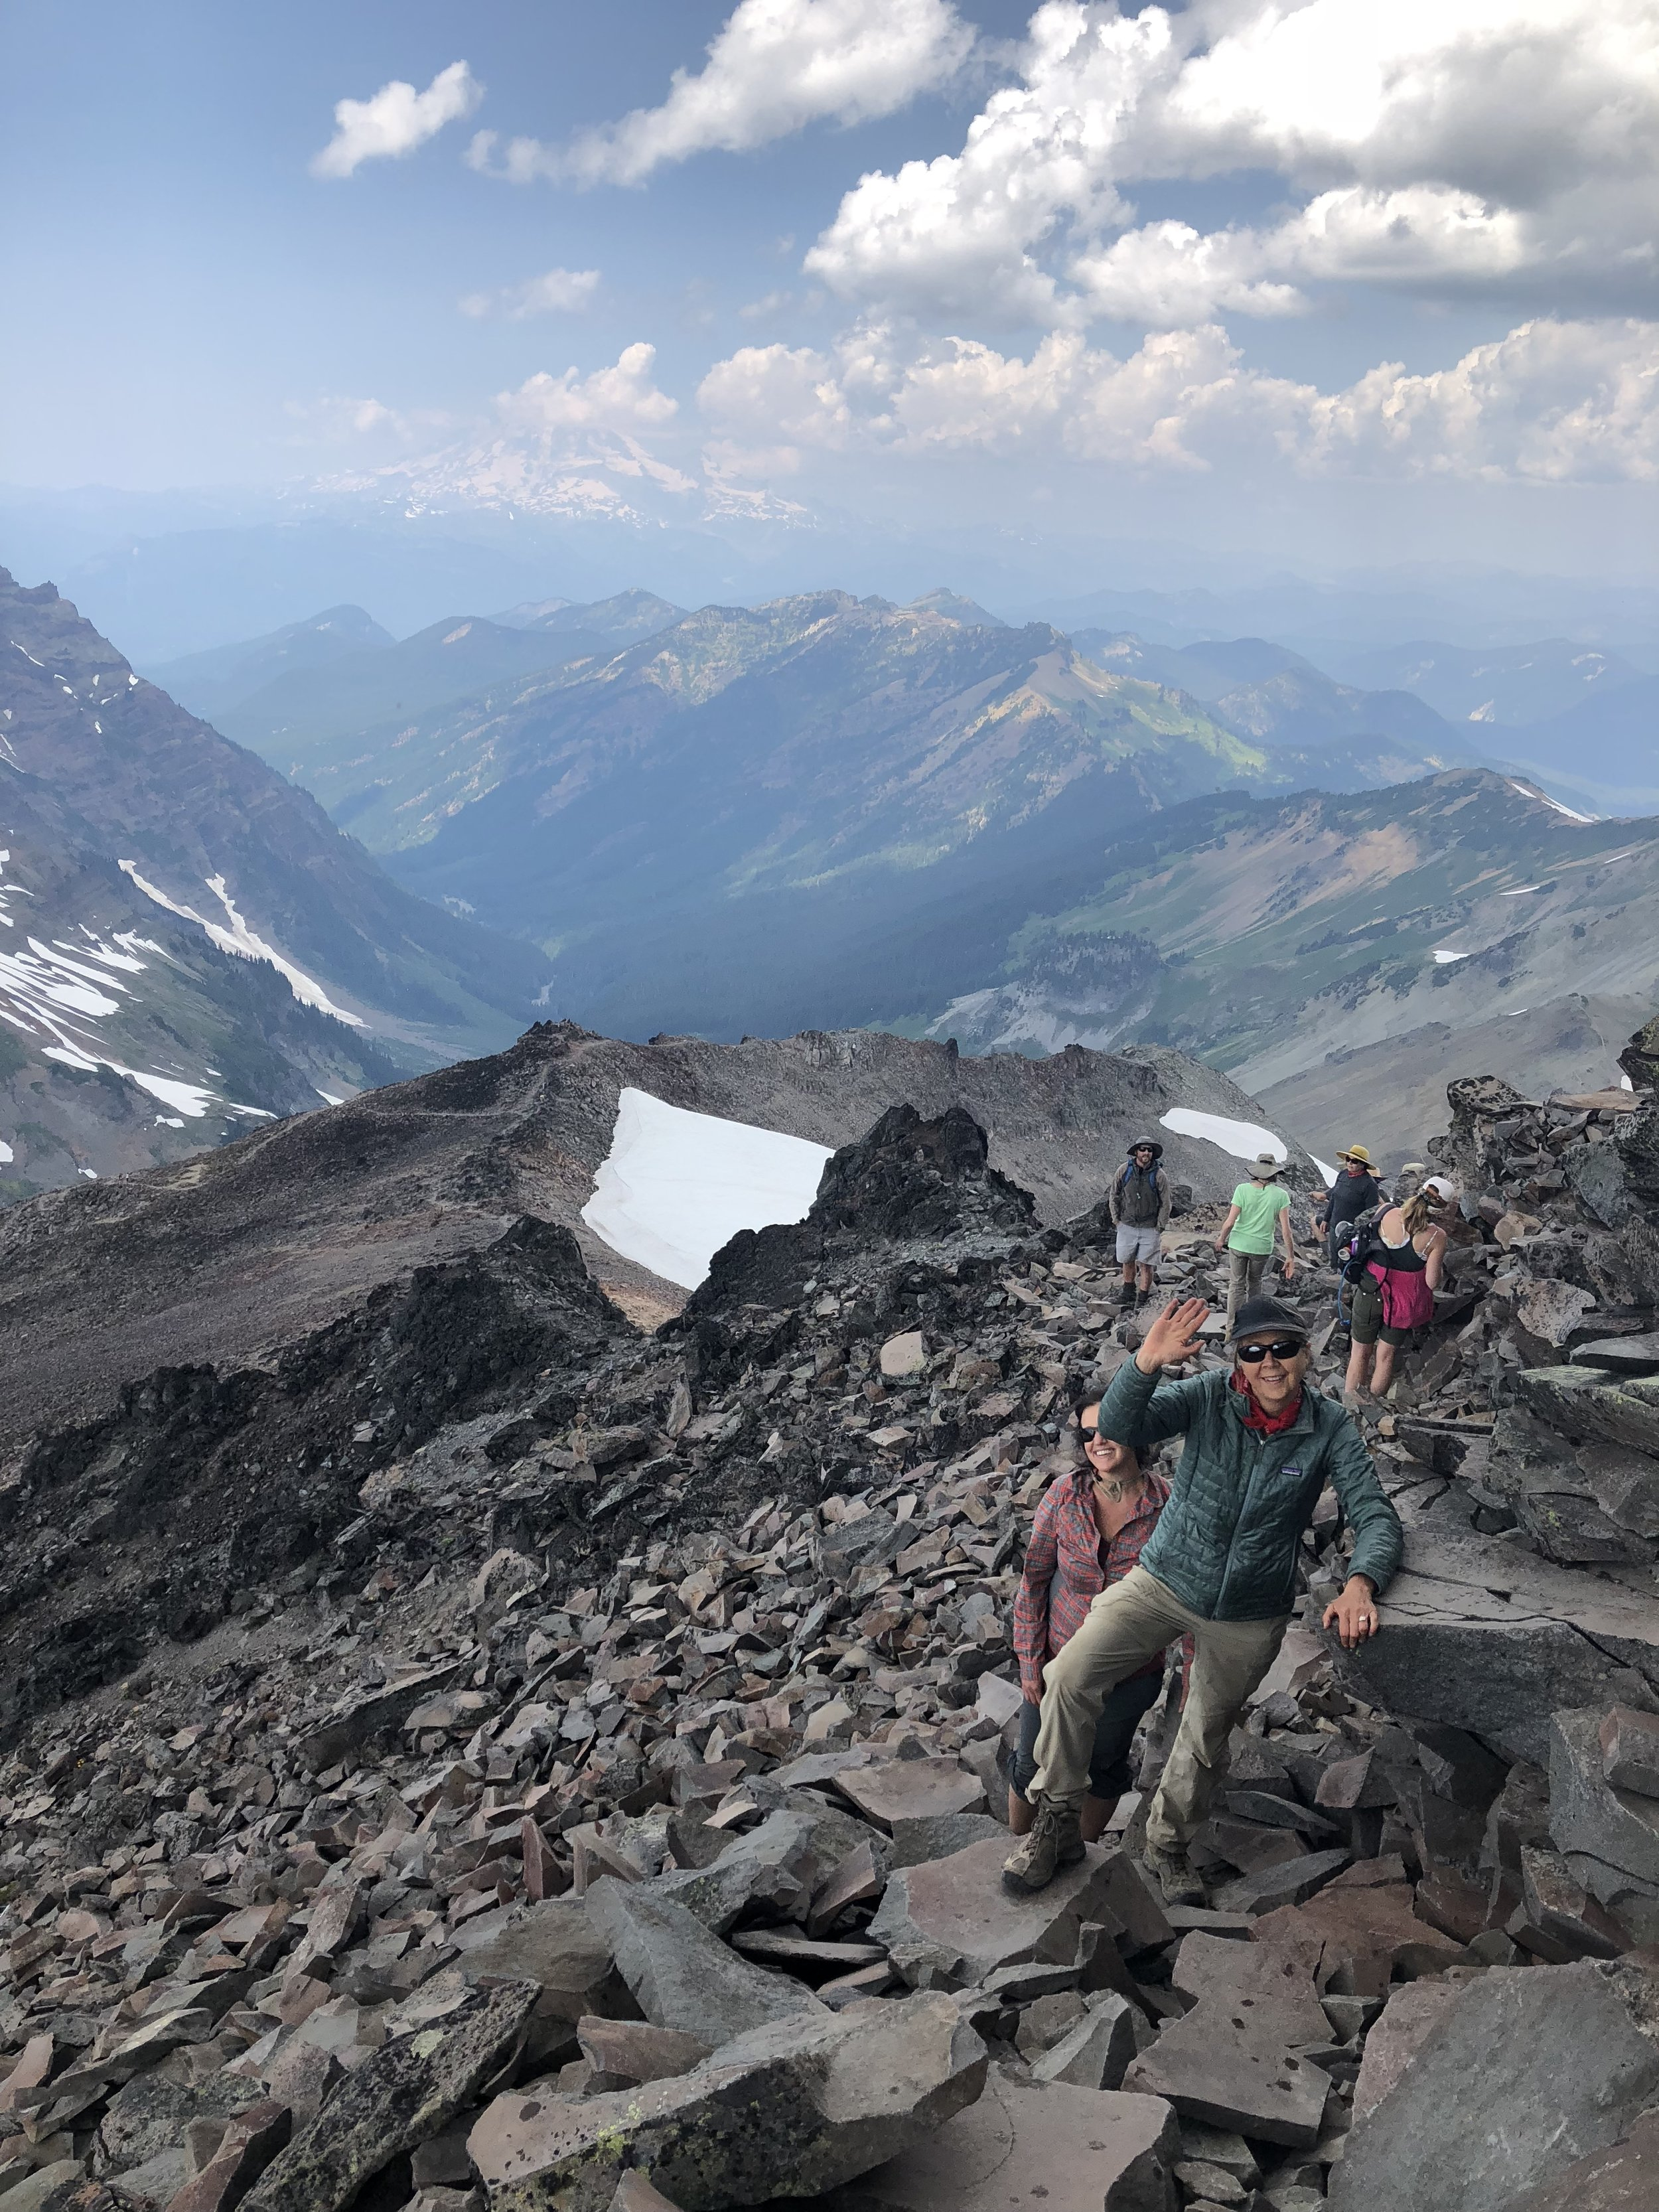 The scramble up Old Snowy Mountain. Mount Rainier in the background!